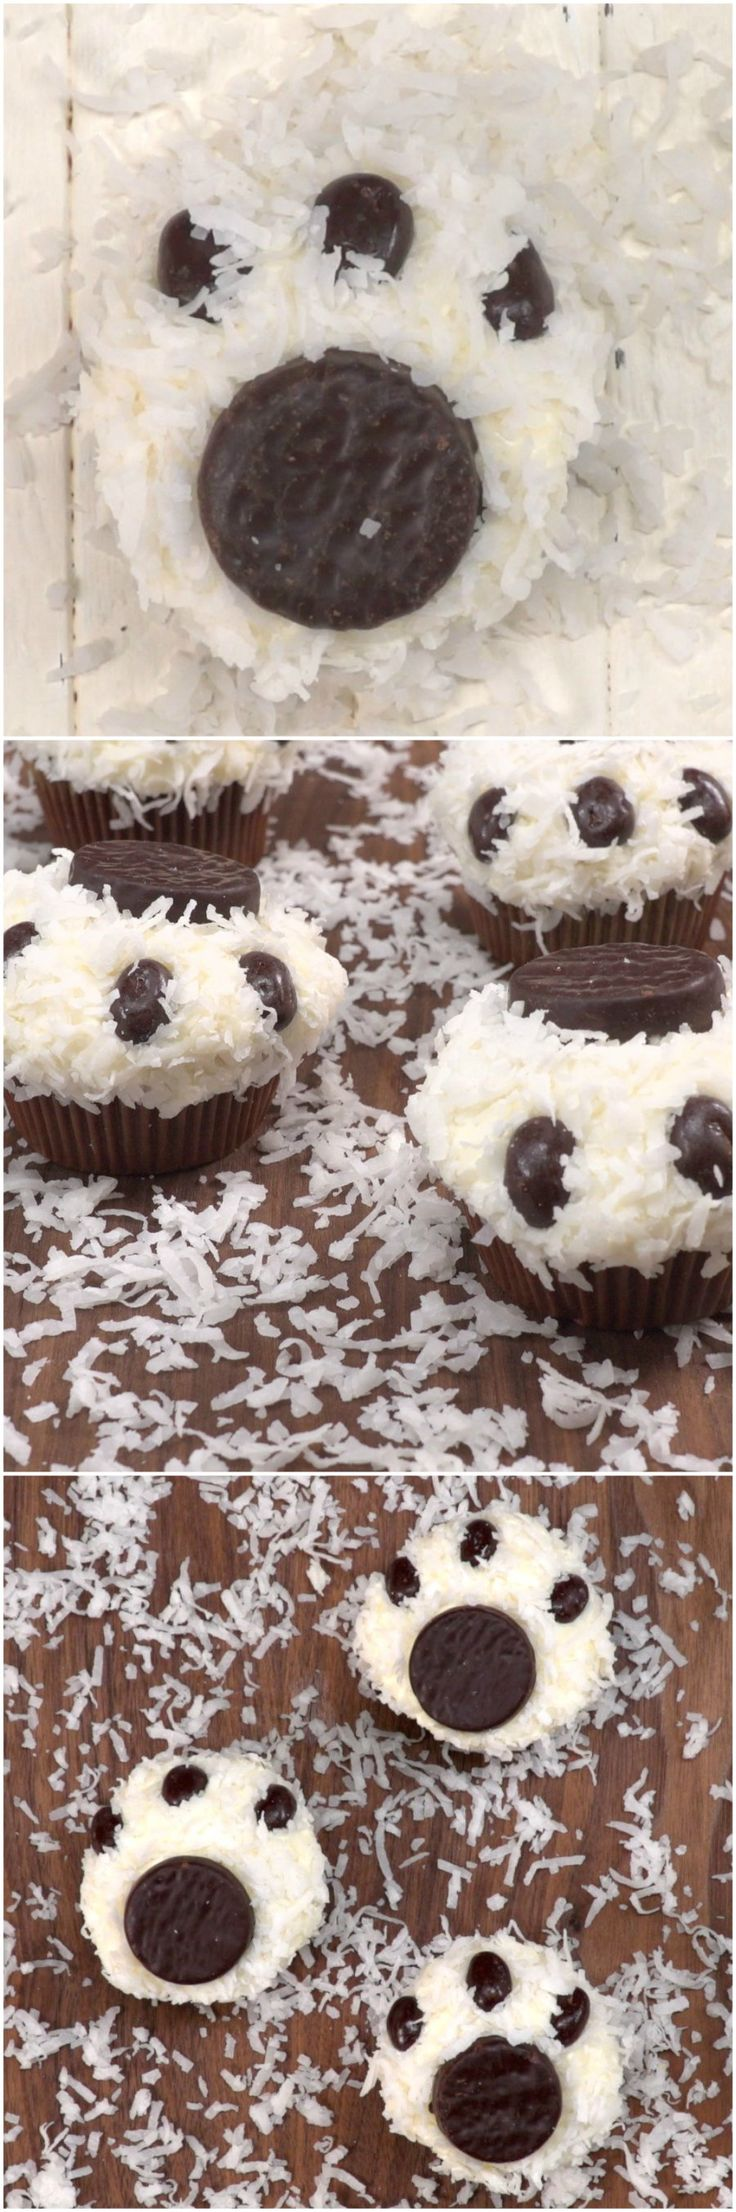 Cute Winter Cupcakes - Fun Polar Bear Paw Cupcakes will put smiles on kids faces.